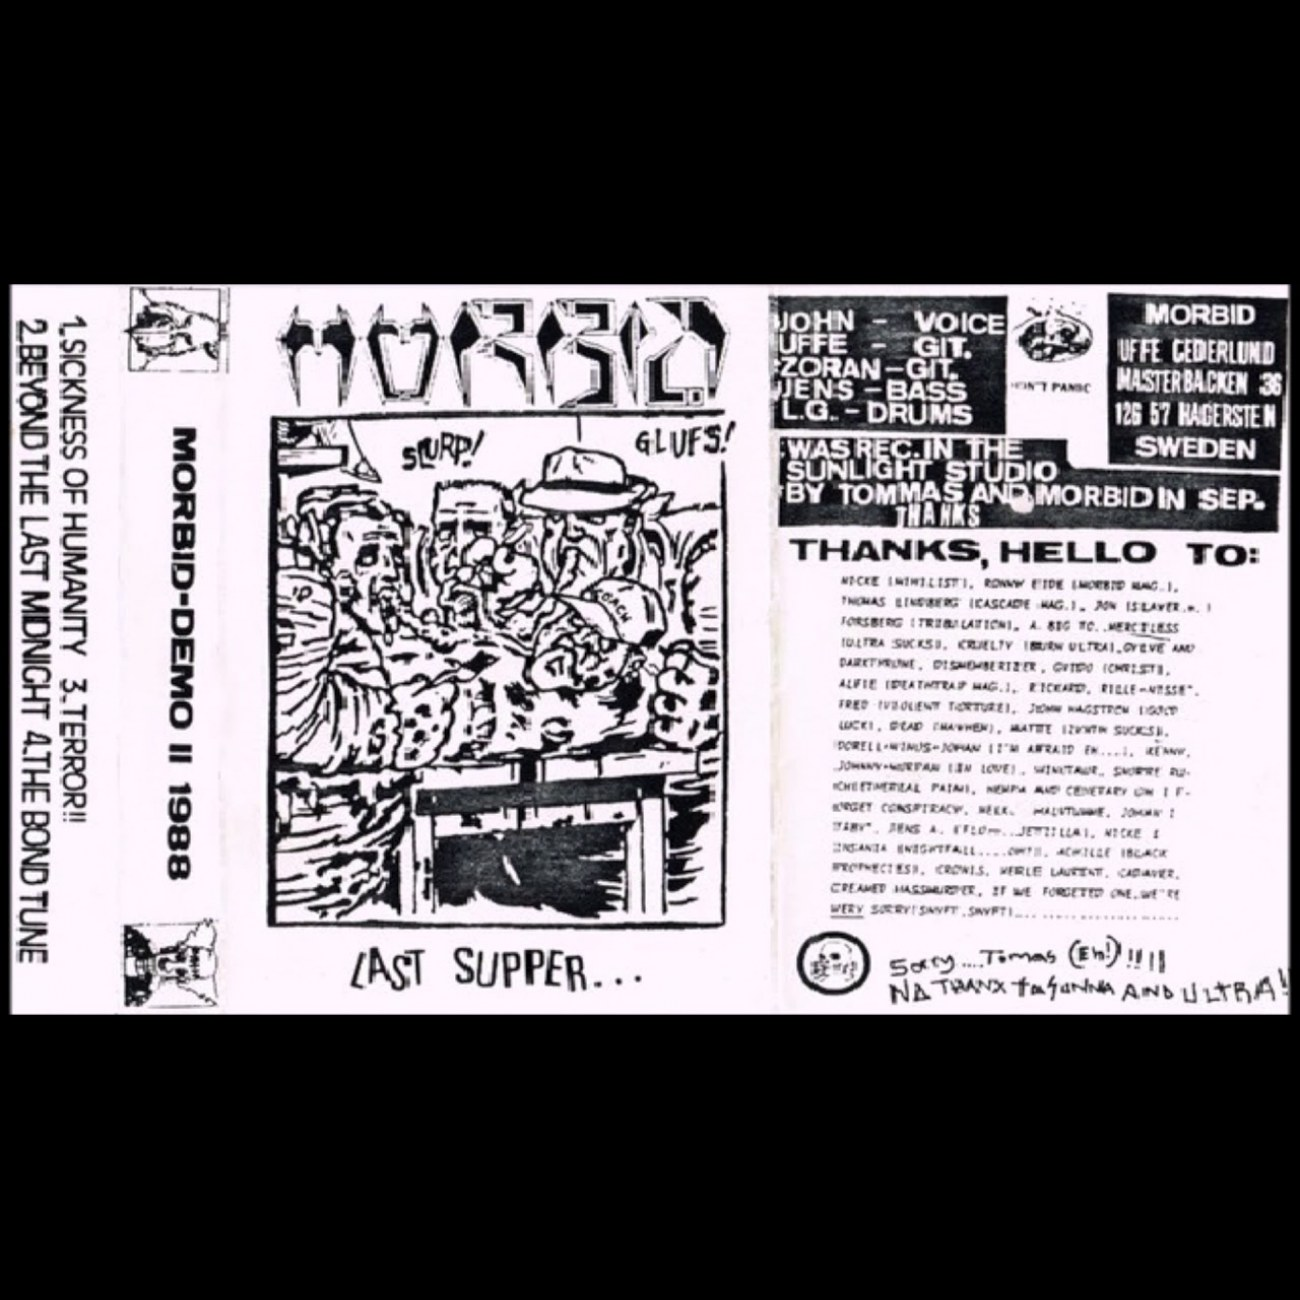 Review for Morbid (SWE) - Last Supper...